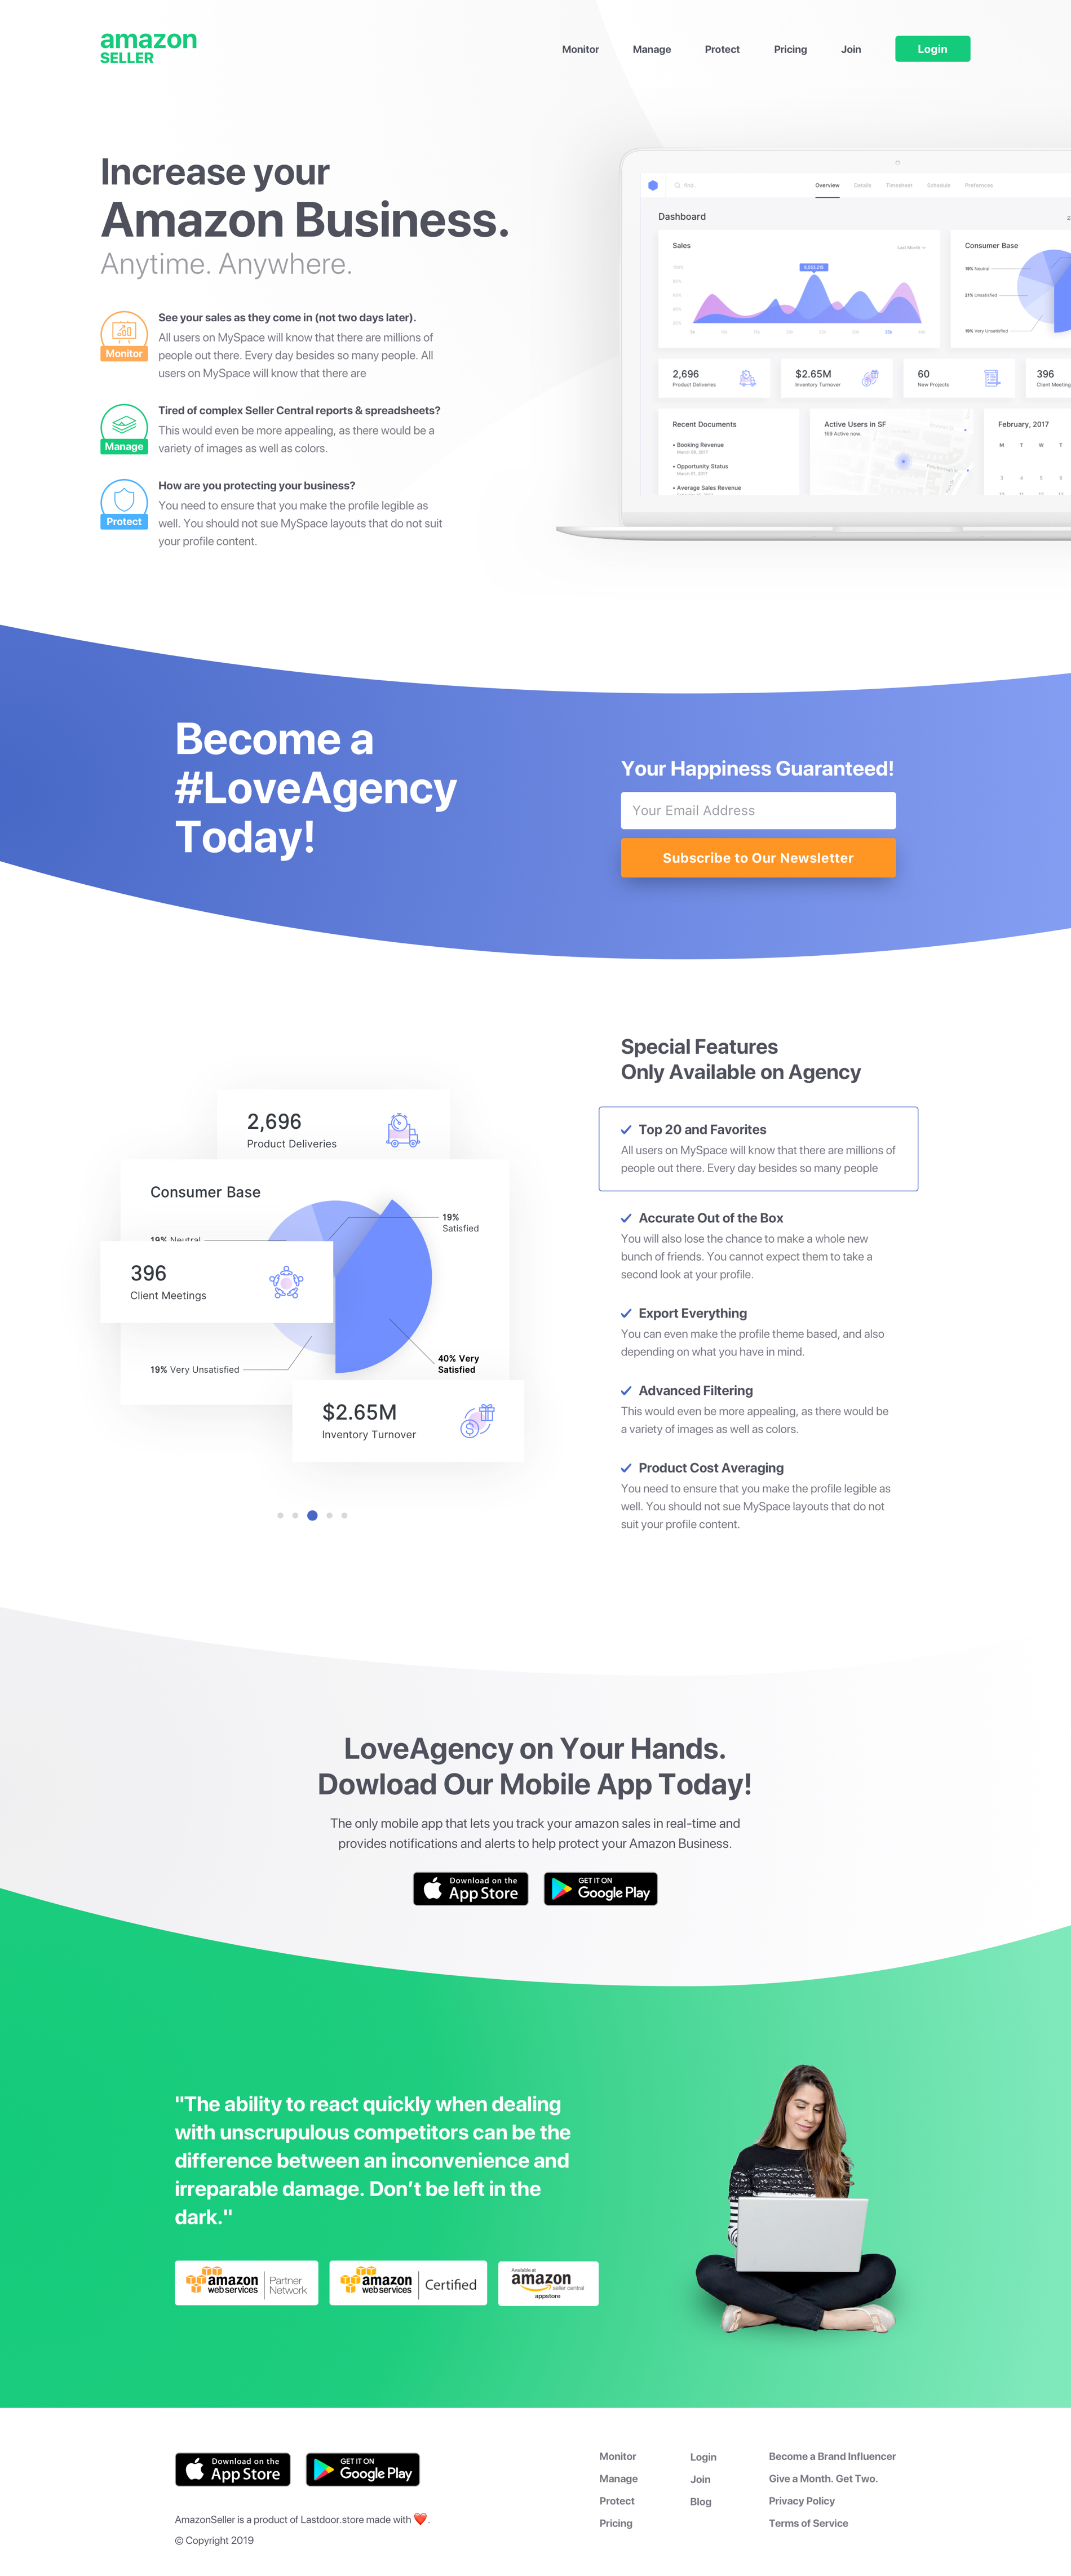 Amazon Seller Landing Page for Sketch - AmazonSeller Landing UI is a modern landing page for agencies and personal use. Best for agencies that run amazon related businesses. Just download and start customizing the design using Sketch.